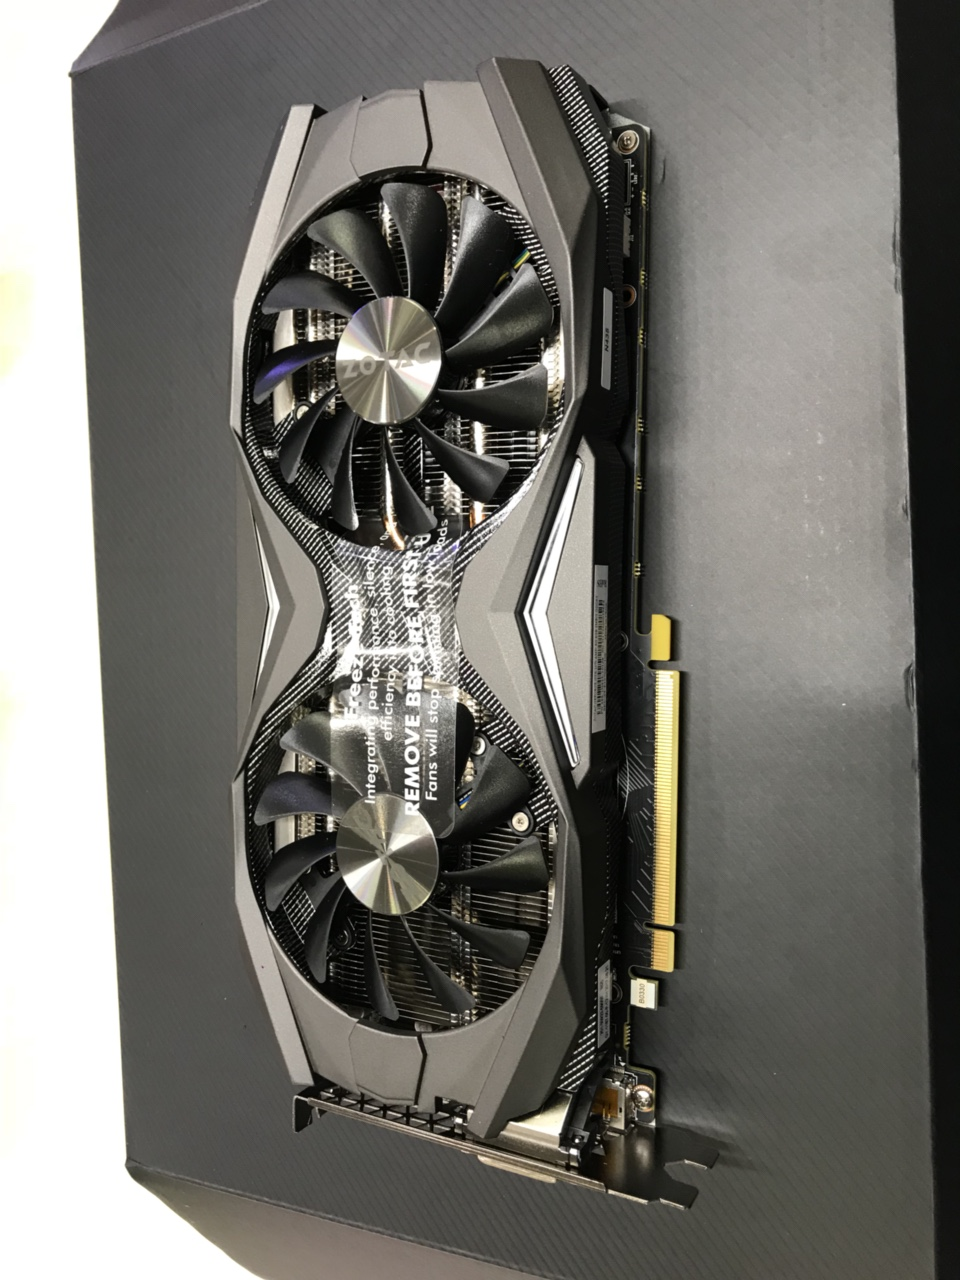 Card màn hình ZOTAC GEFORCE GTX 1070 AMP! Edition 8GB GDDR5